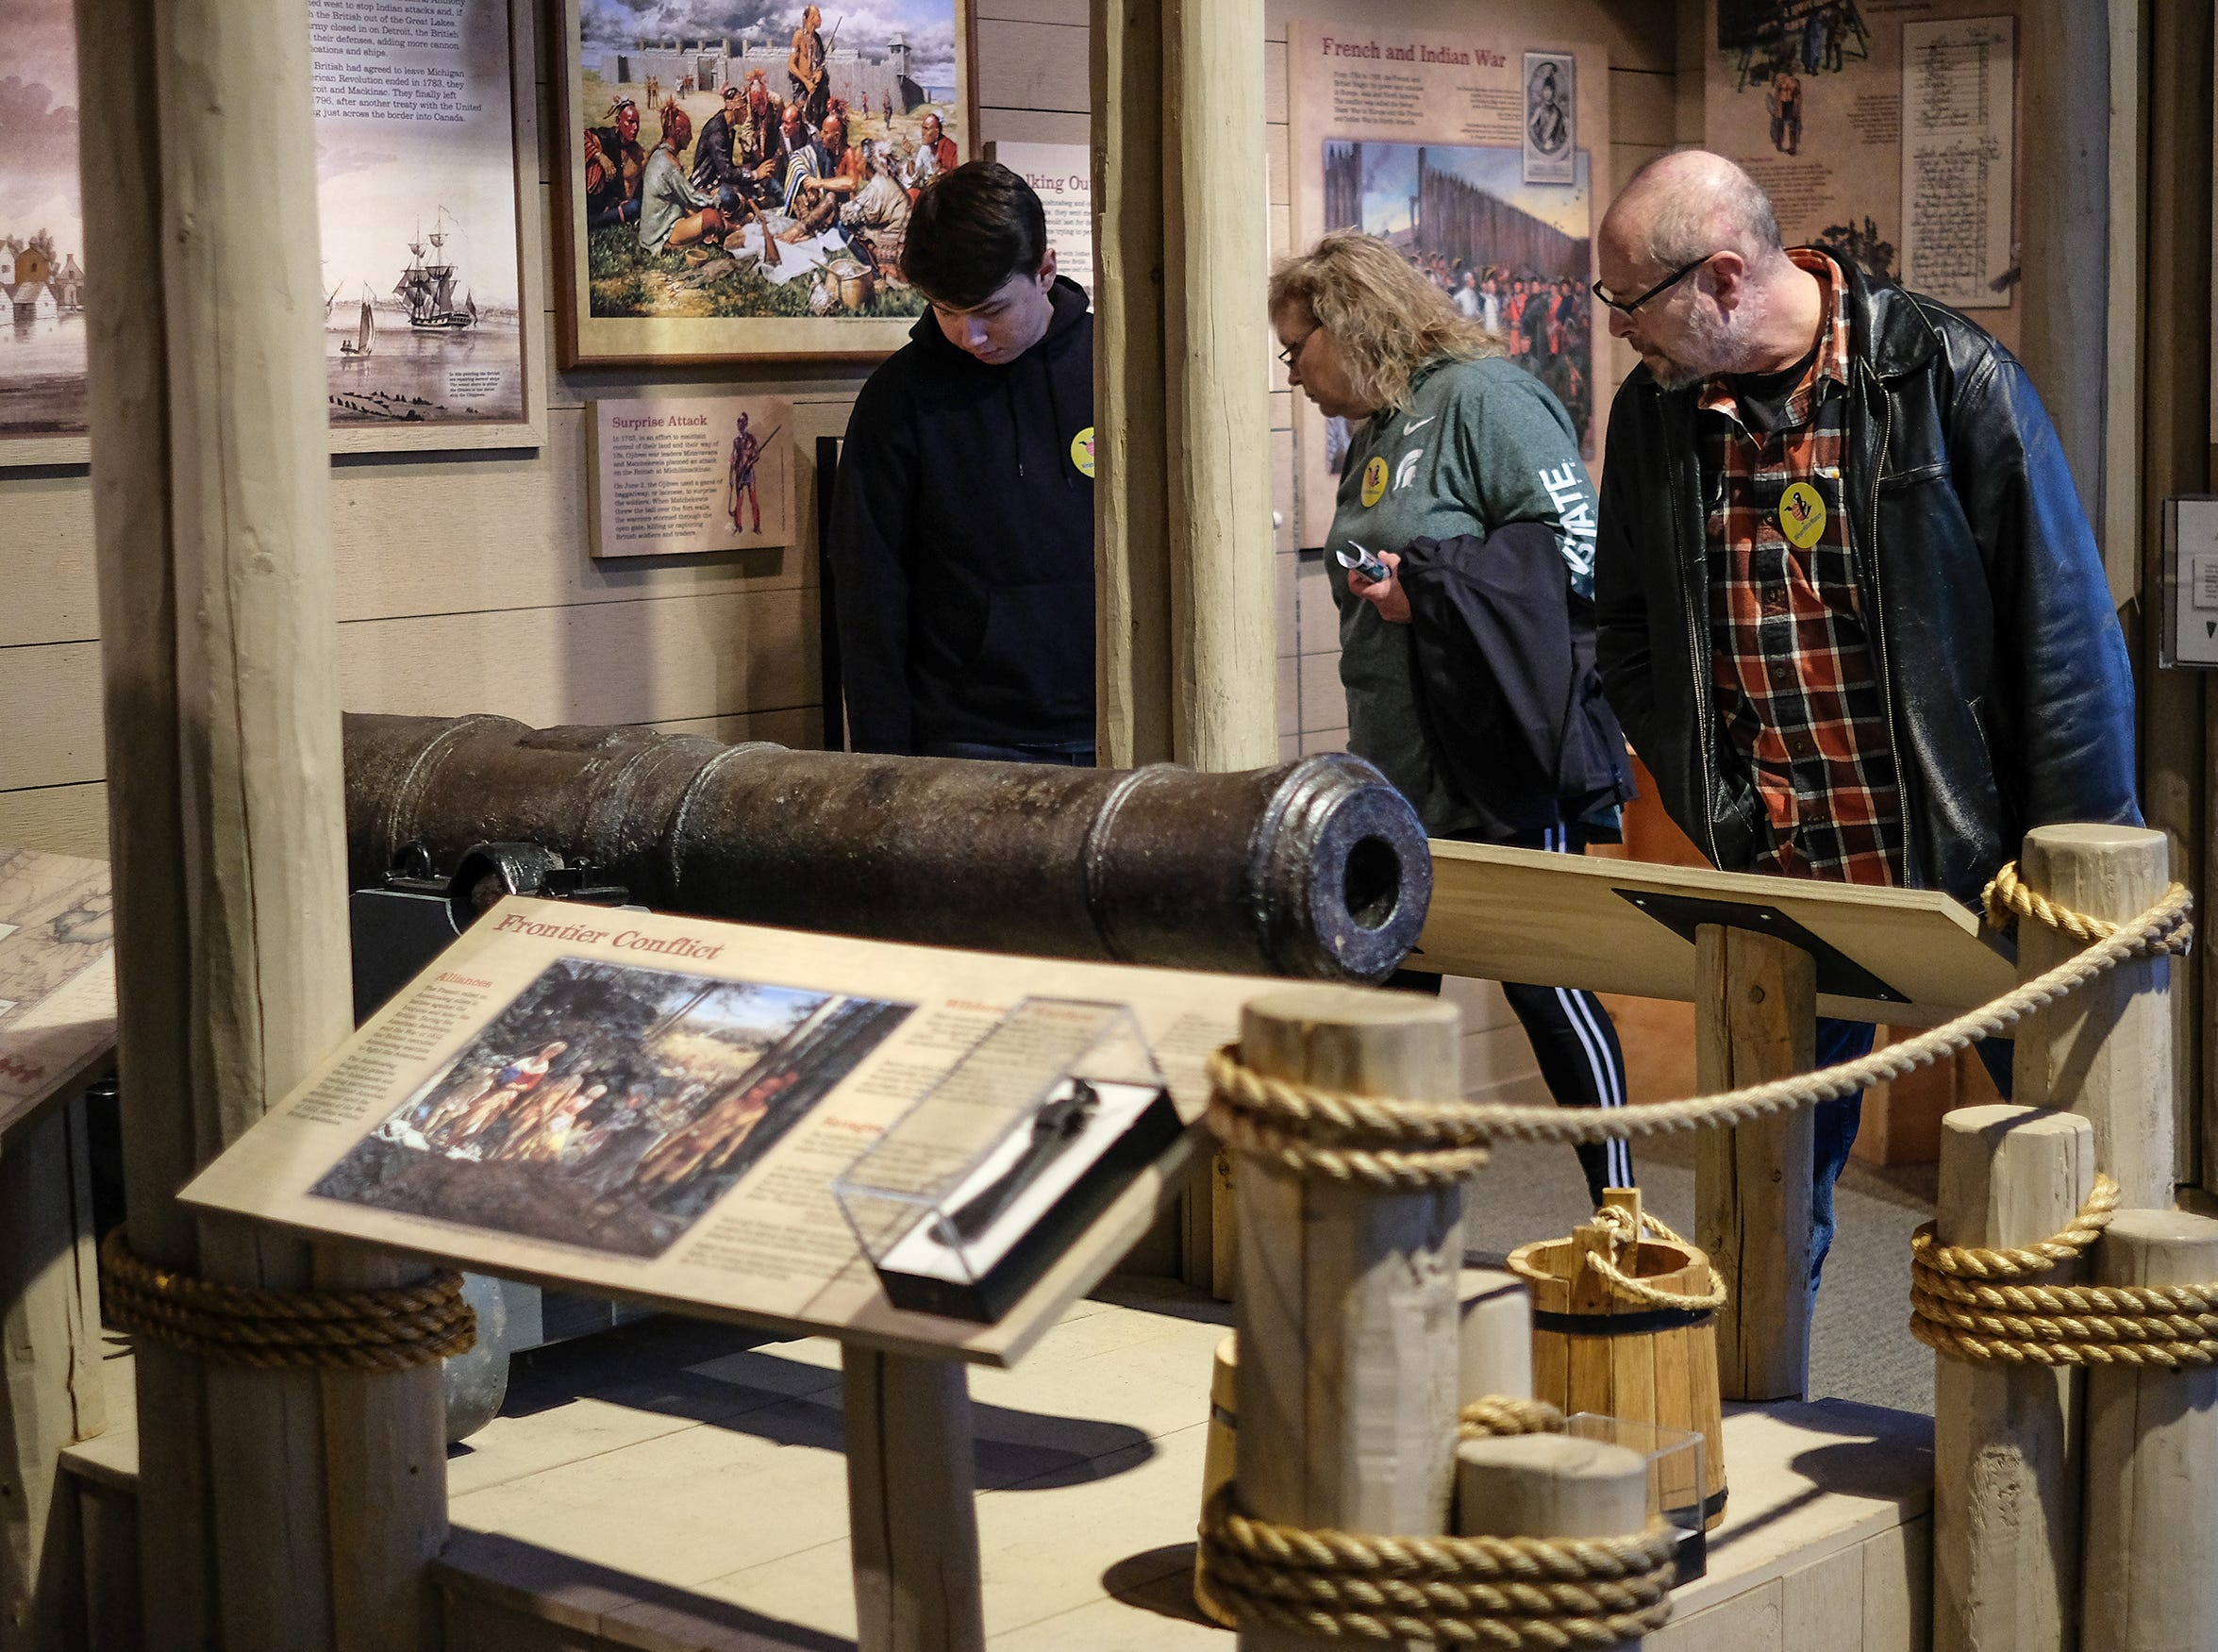 People check out the restored cannon that was pulled out of the Detroit River at the Welcome to Statehood Day 2019 event at the Michigan Library and Historical Center Saturday, Jan. 26, 2019. Michigan became a state on this day in 1837.